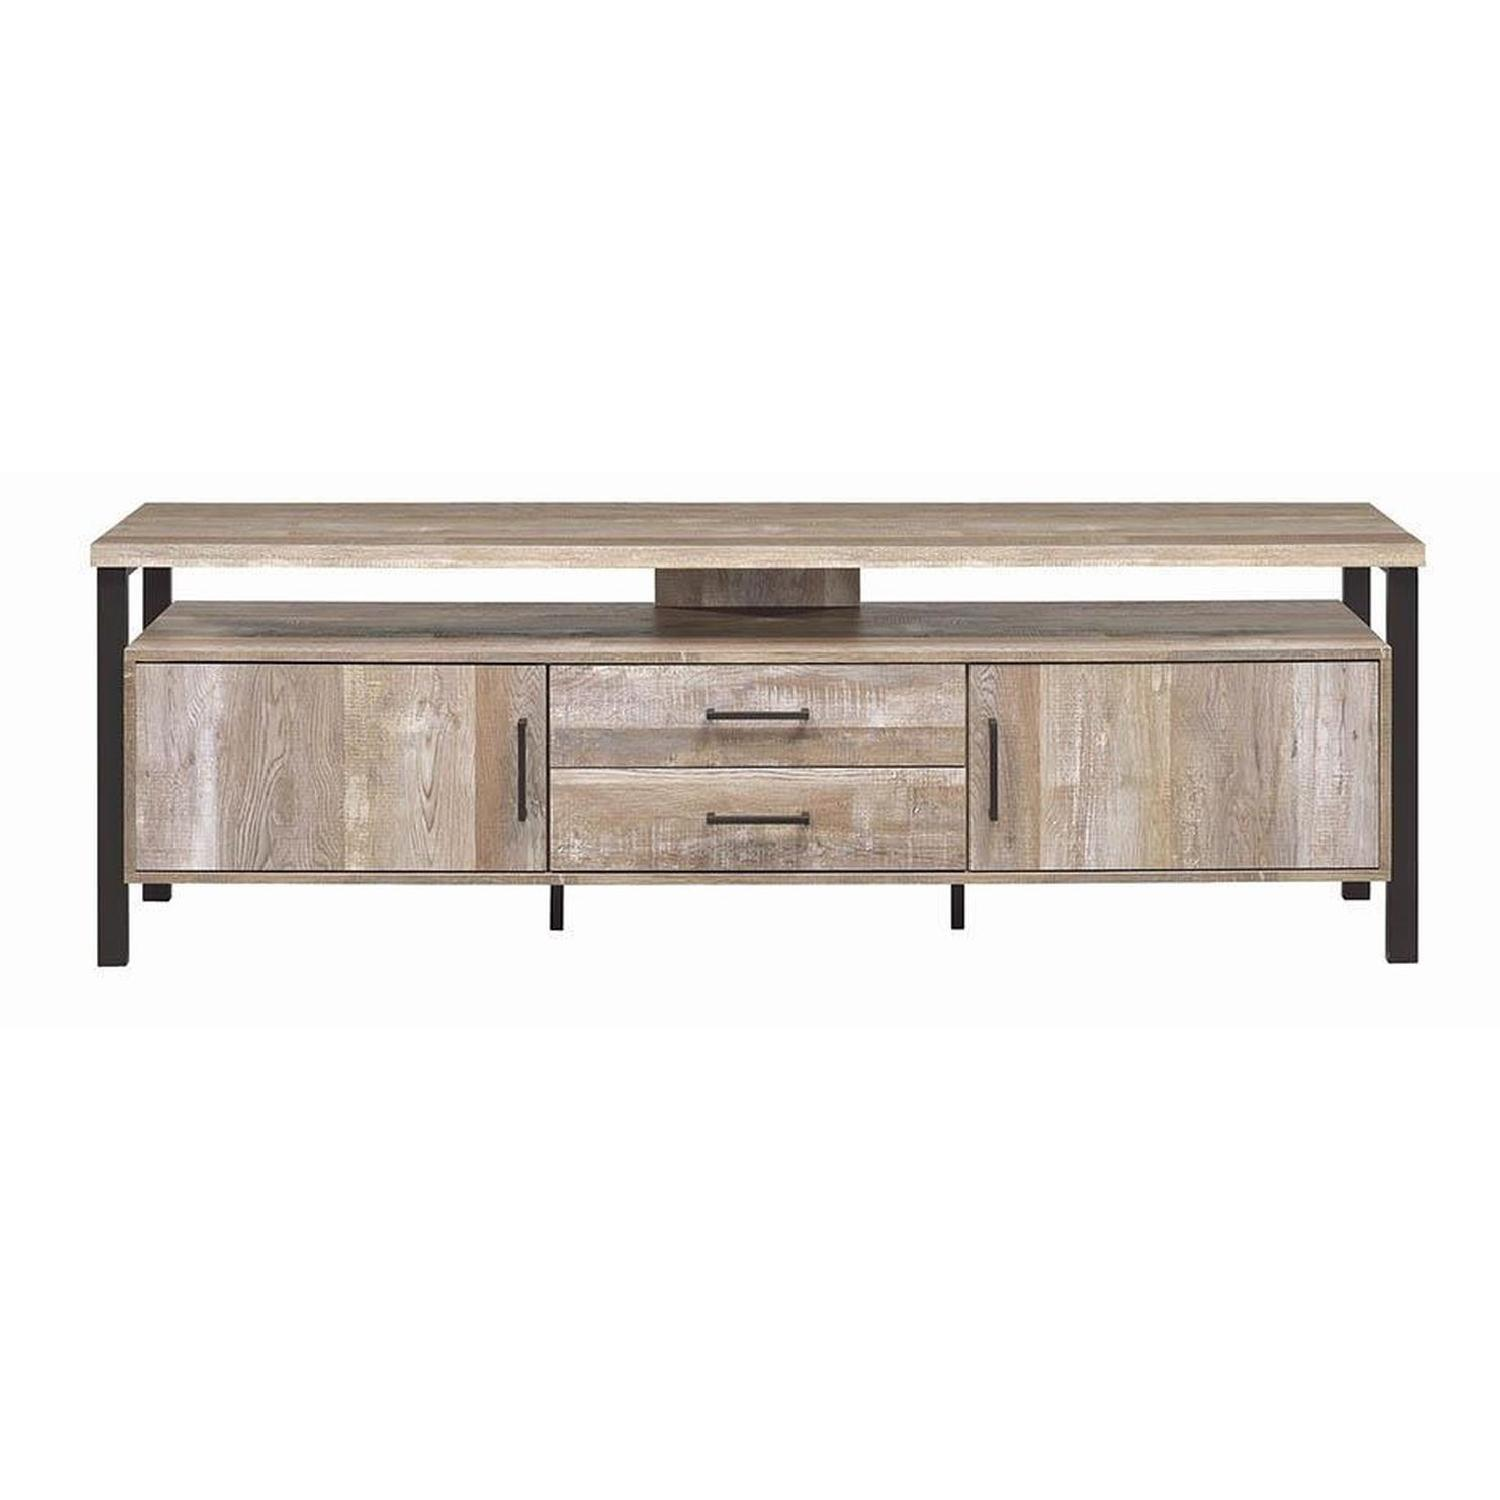 TV Stand In Rustic Oak Finish w/ 2 Cabinets & 2 Drawers - image-15